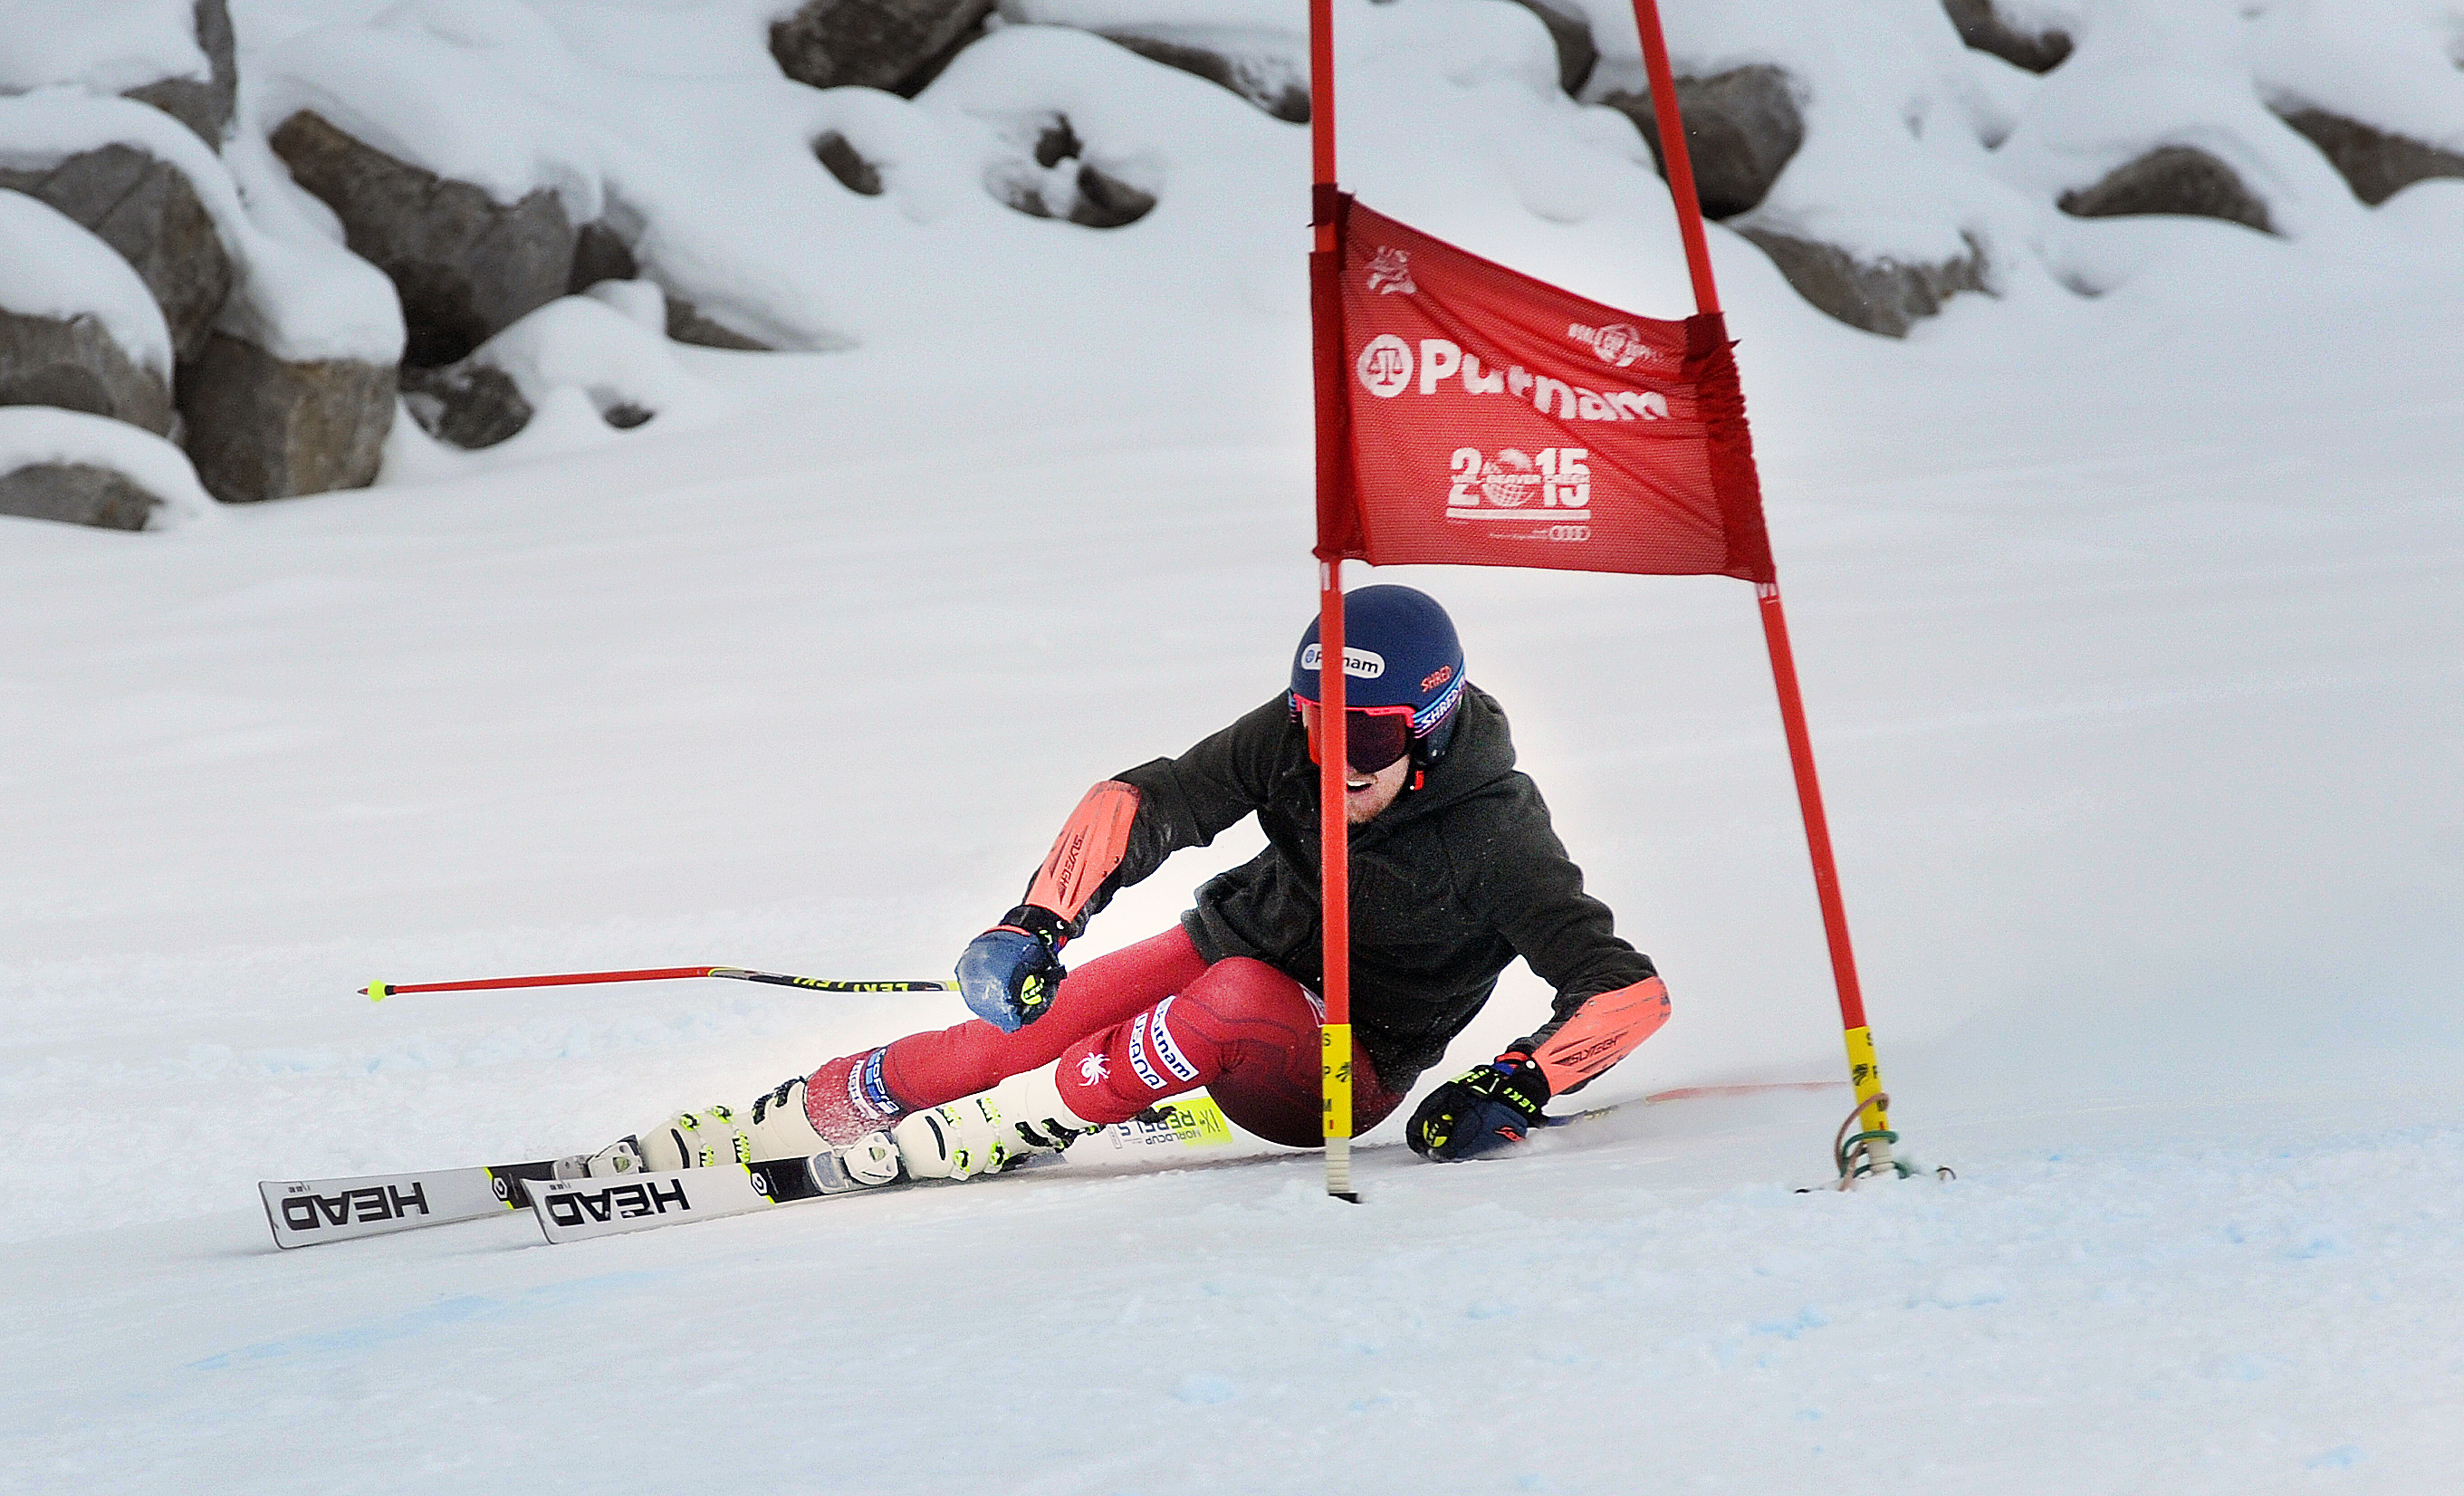 Ted Ligety trains for the Audi FIS Ski World Cup opener at Soelden, Austria on the Rettenbach Glacier. PHOTO: Tom Kelly/US Ski Team